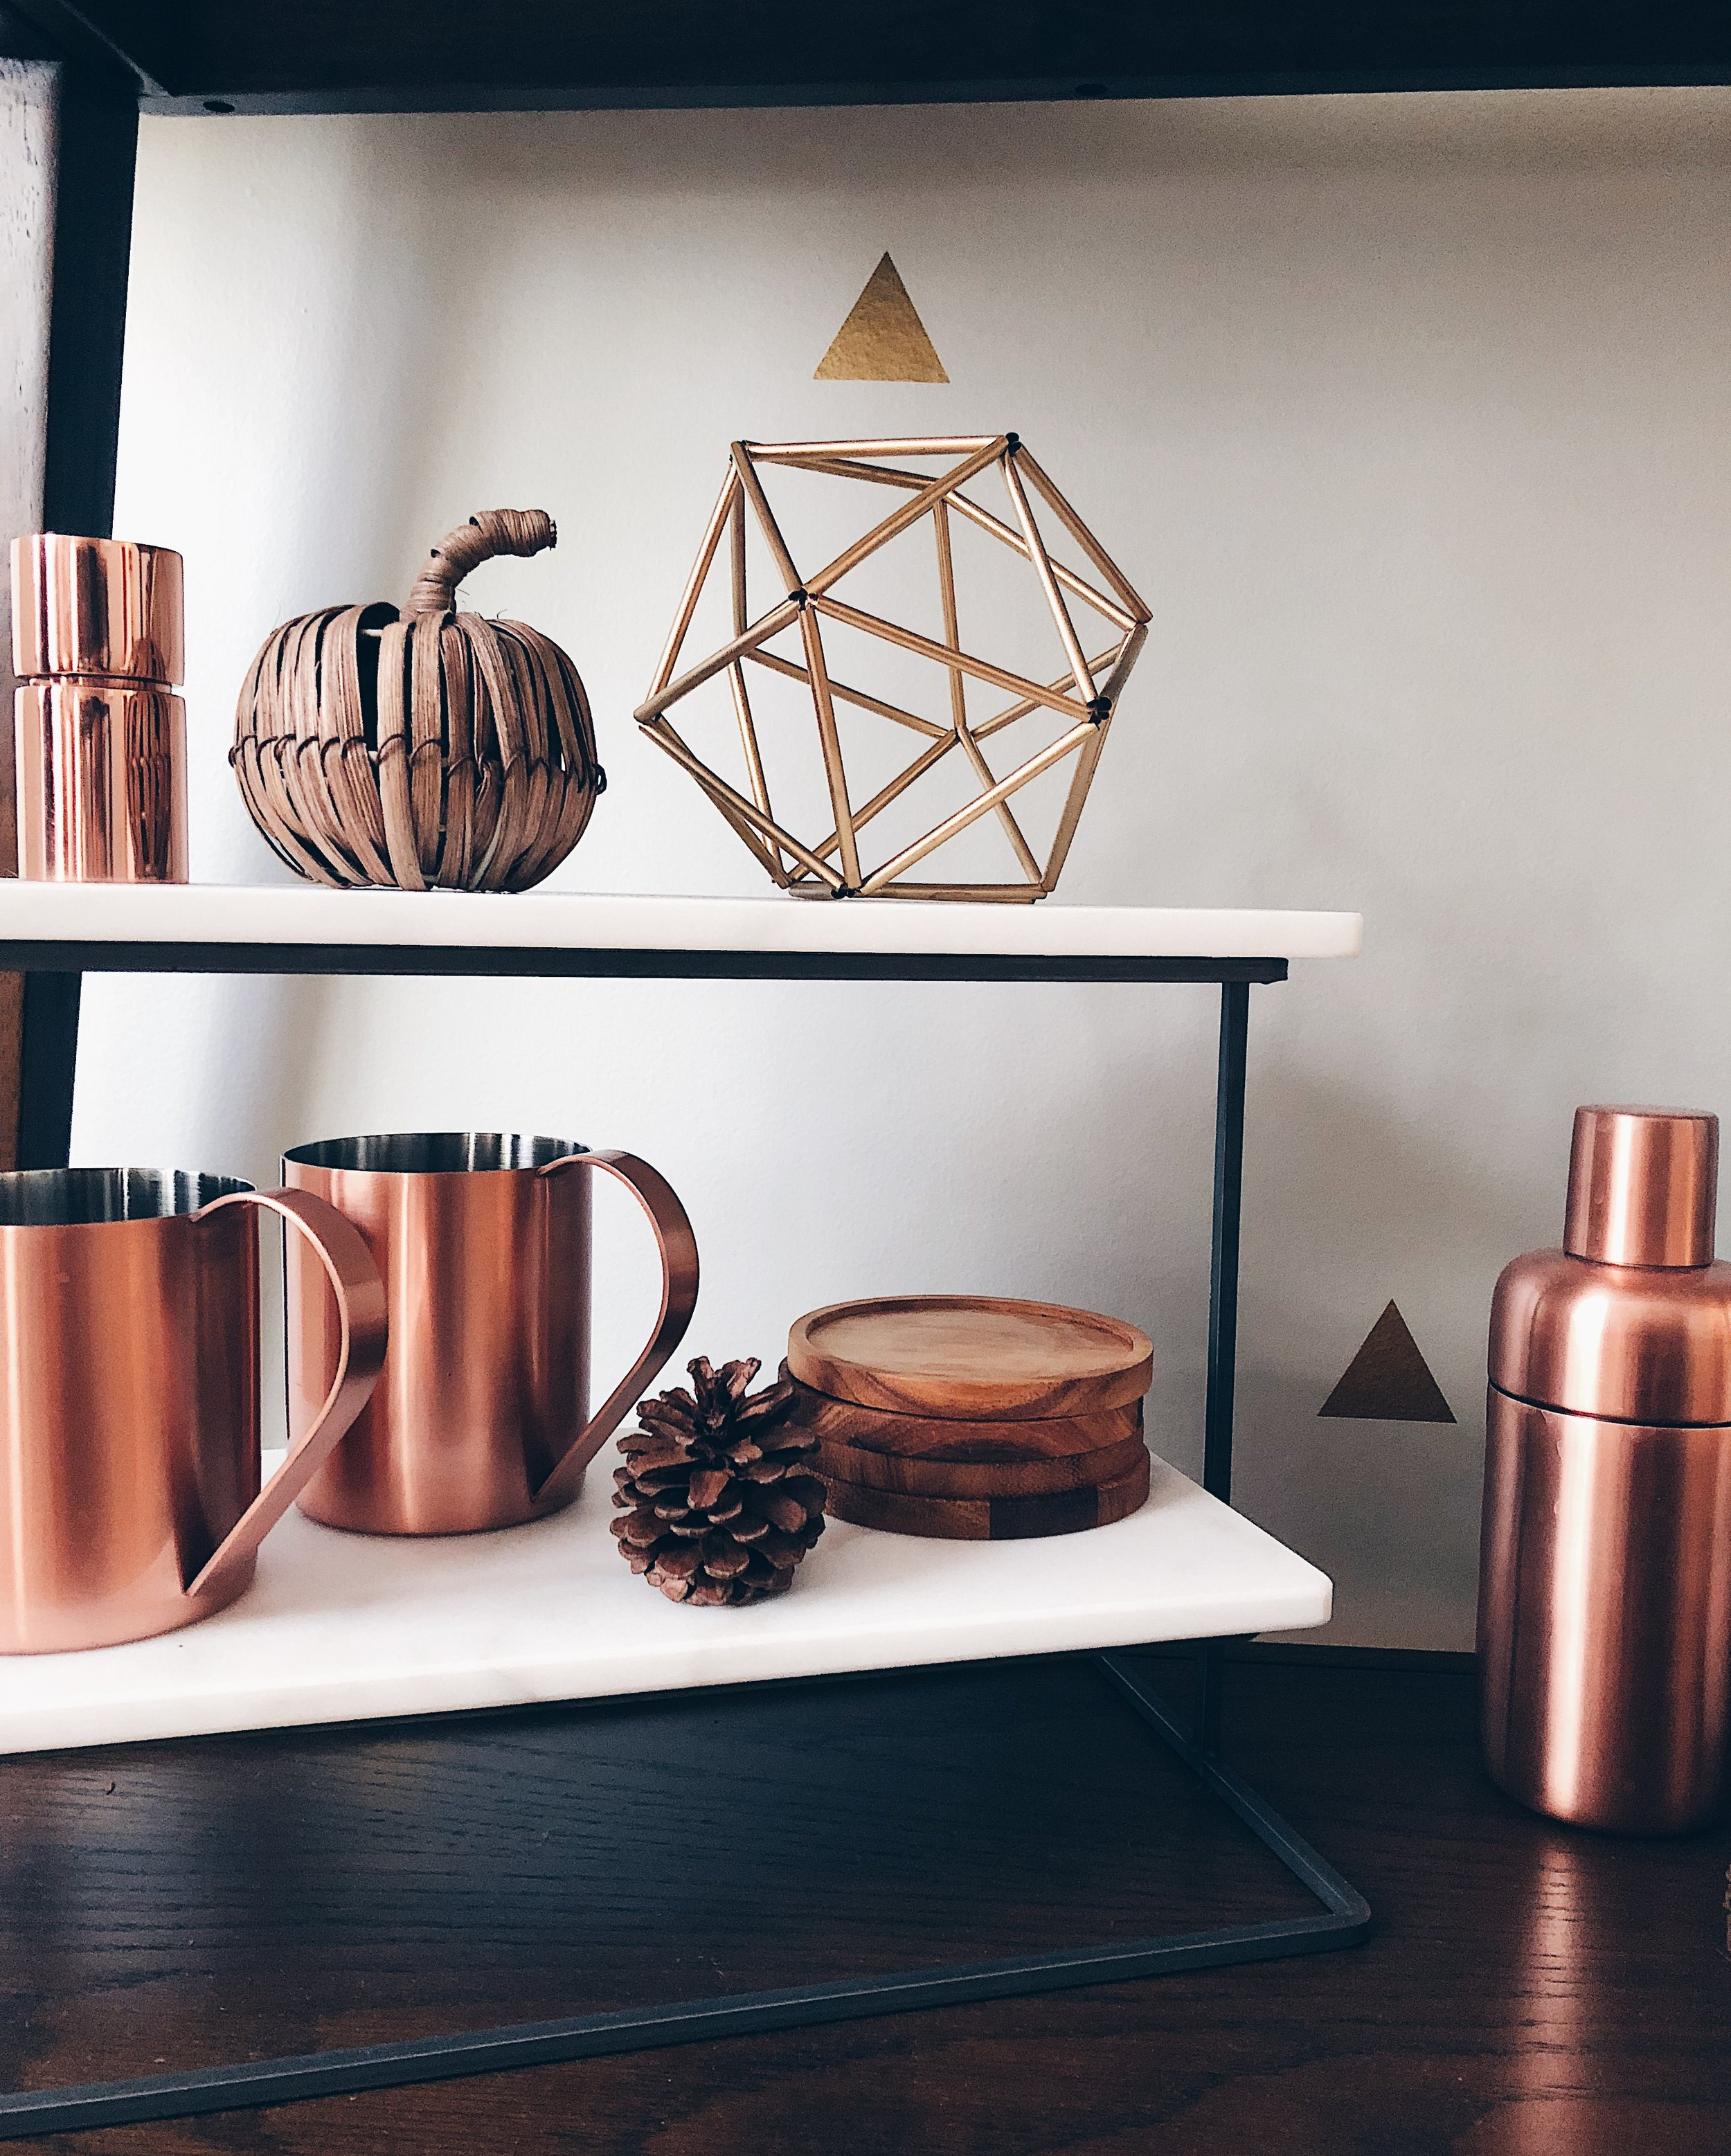 Sources:  Marble Tiered Server  /  Copper Jigger  /  Moscow Mule mugs  /  Copper Cocktail Shaker  /  Acacia Wood Coasters  / Brown Raffia Apple: Pottery Barn / Gold Geo Sculpture: DIY